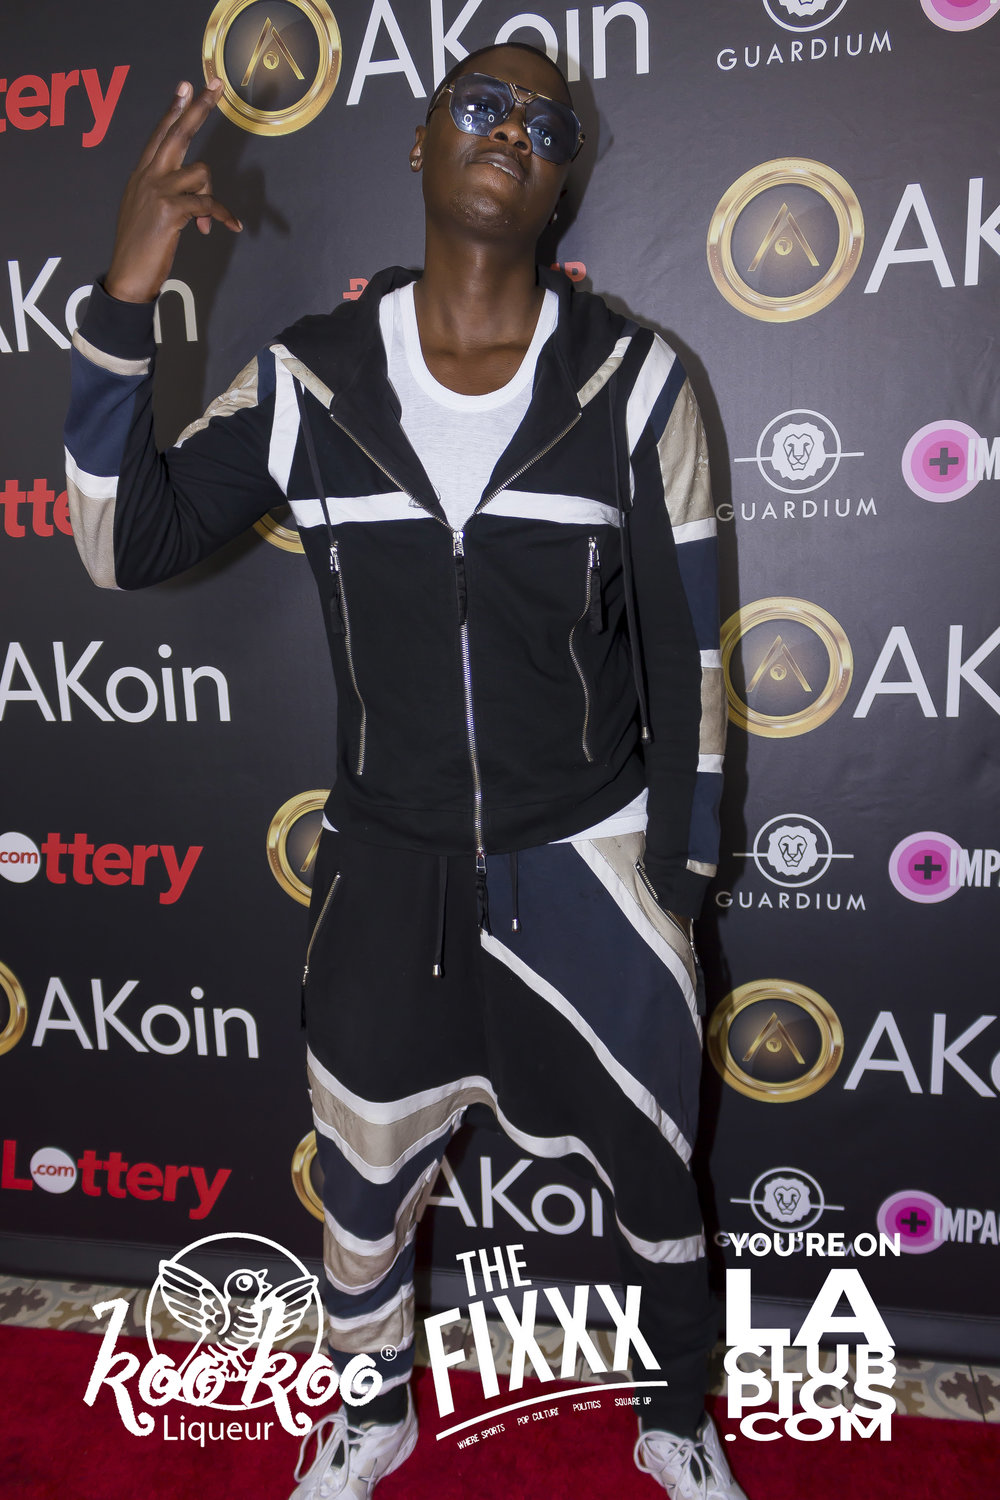 AKoin Official Launch - 08-07-18_117.jpg